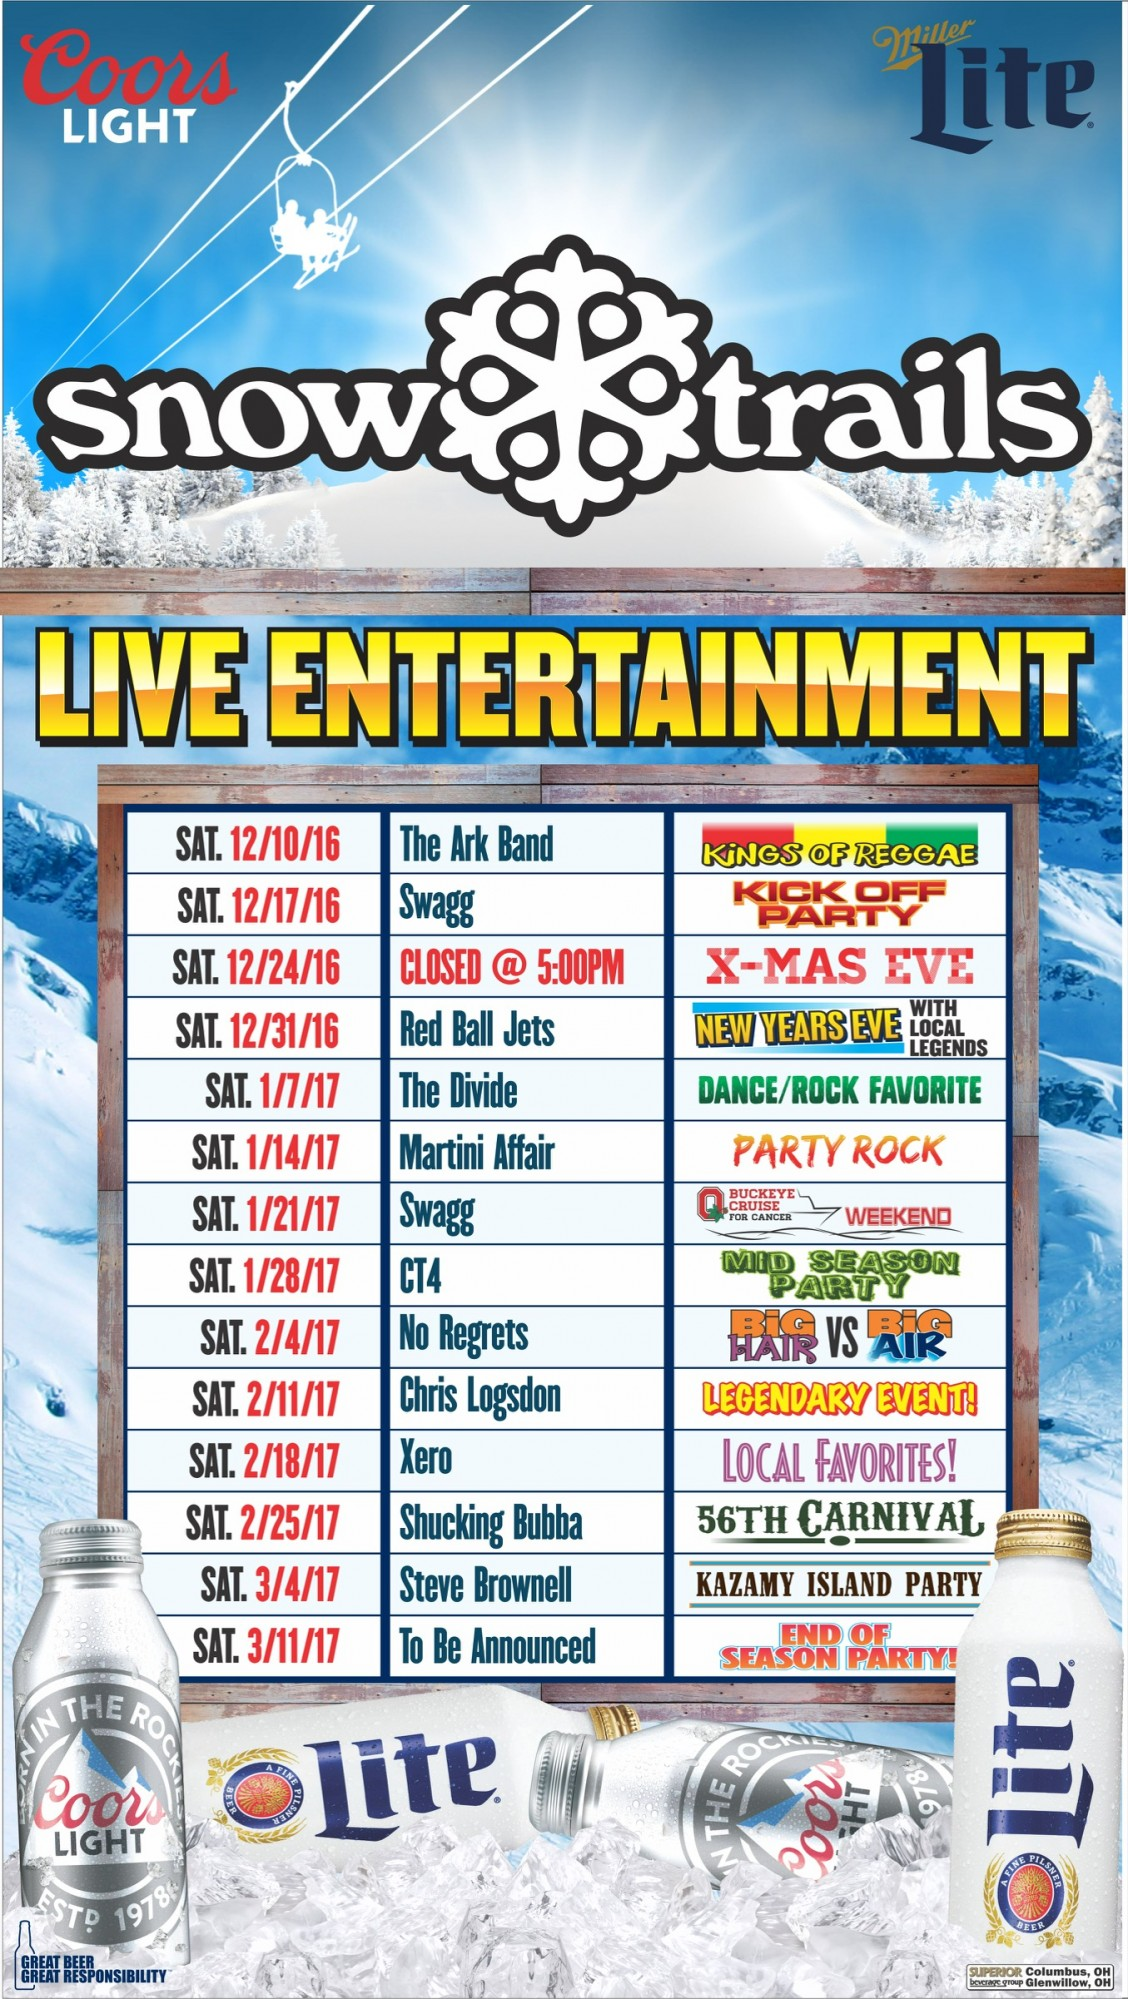 Snow Trails Live Entertainment Schedule 2016-'17